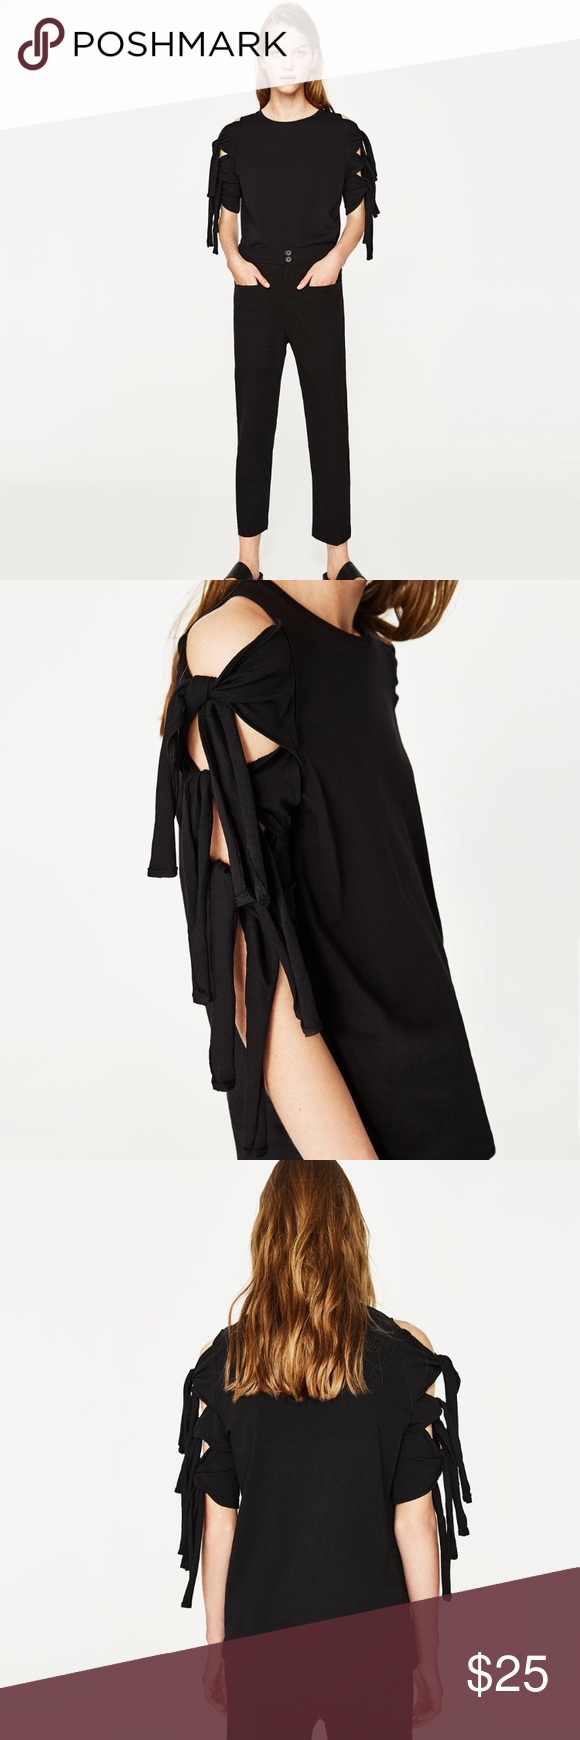 Sold zara tie sleeve top short sleeves zara black and shorts